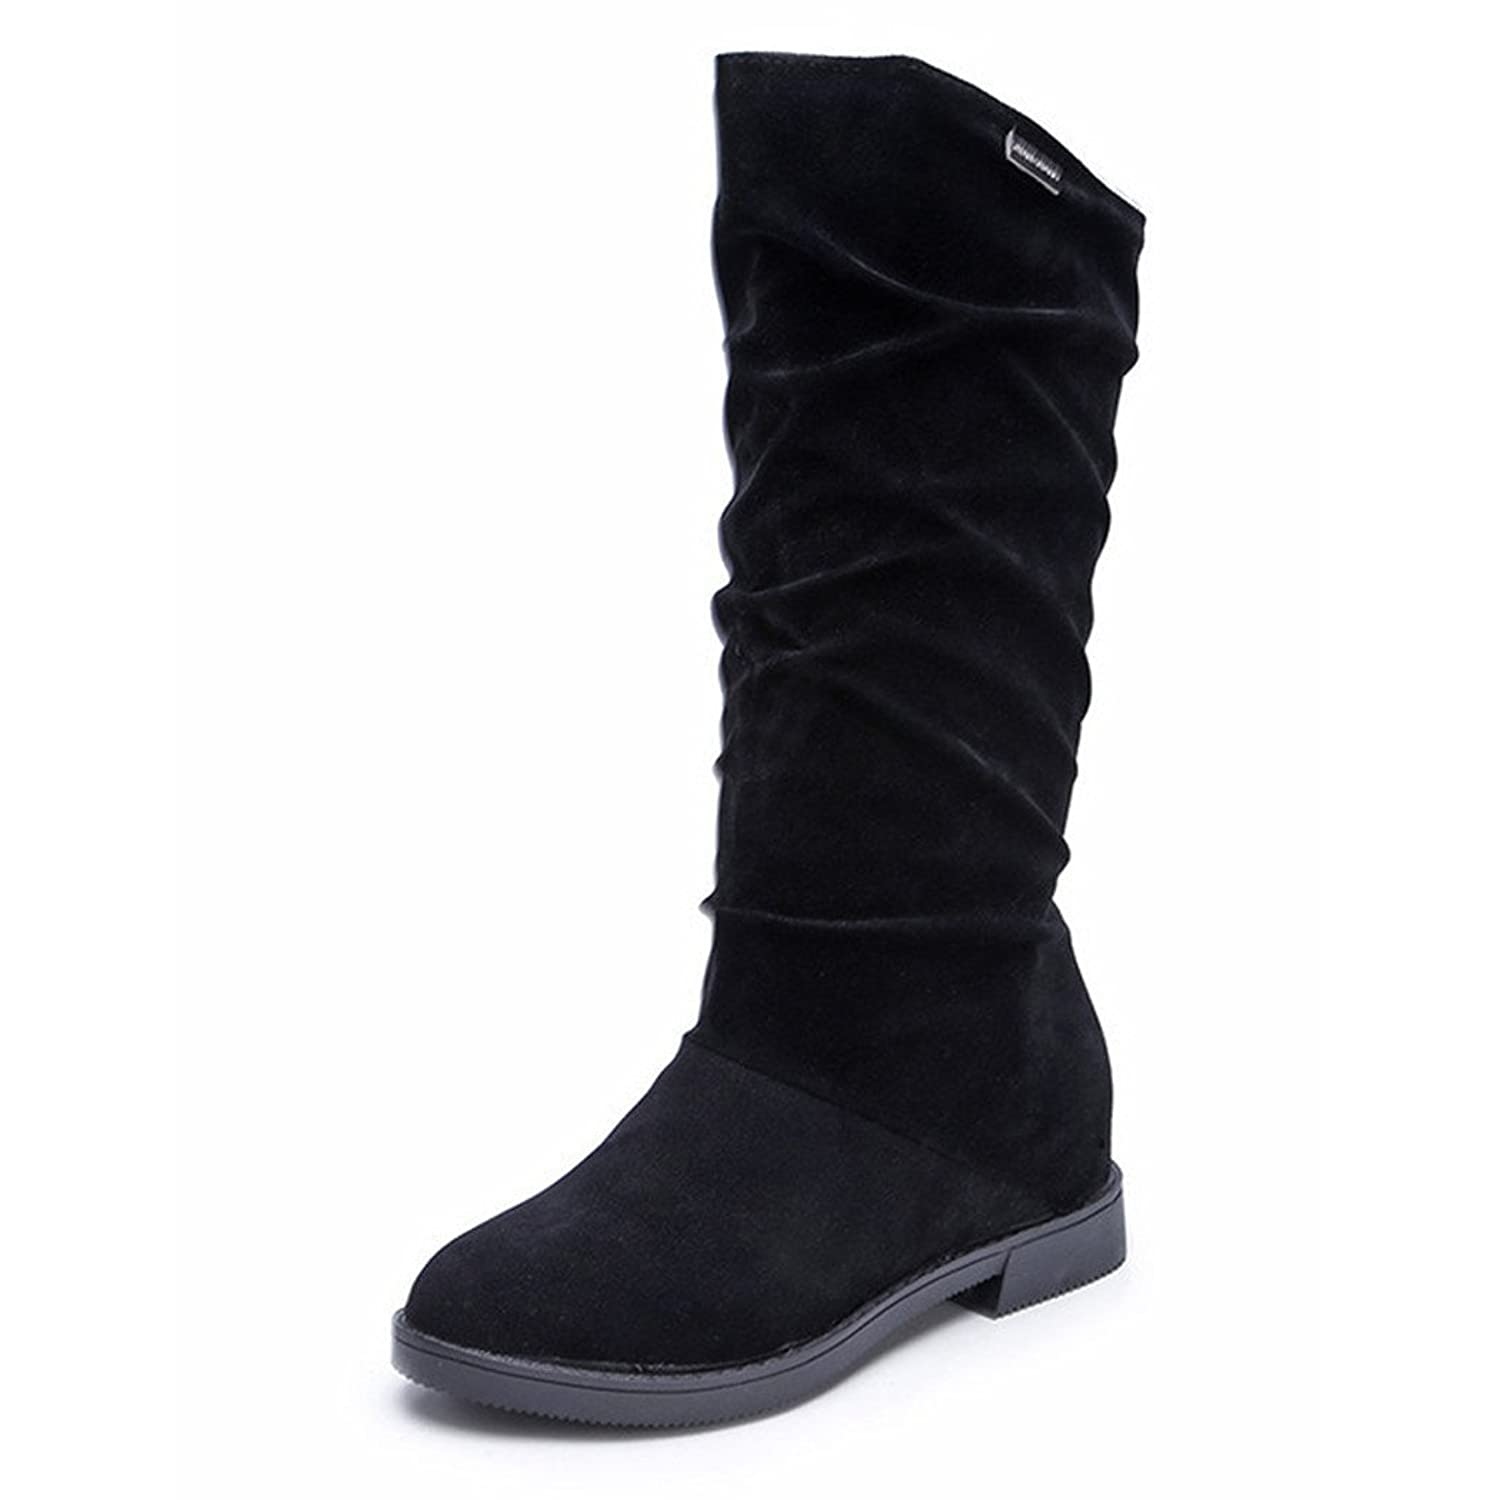 Women's Trendy Round Toe Mid Calf Quilted Low Heel Warm Snow Boots